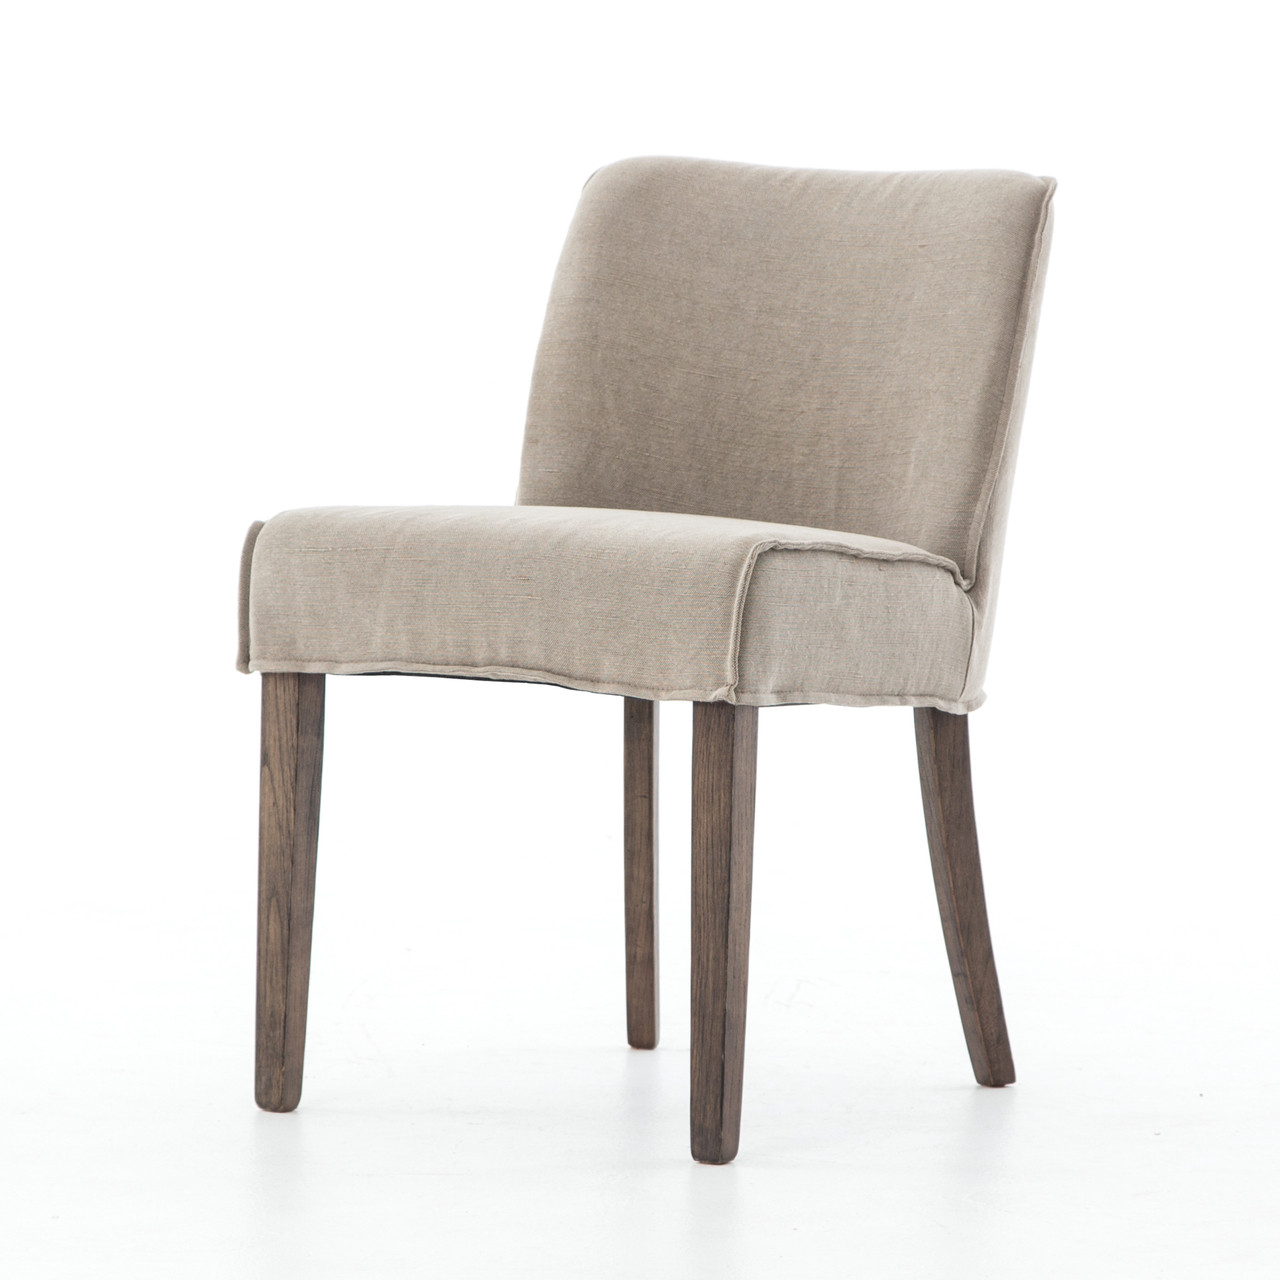 Urban Rustic Upholstered Dining Side Chair